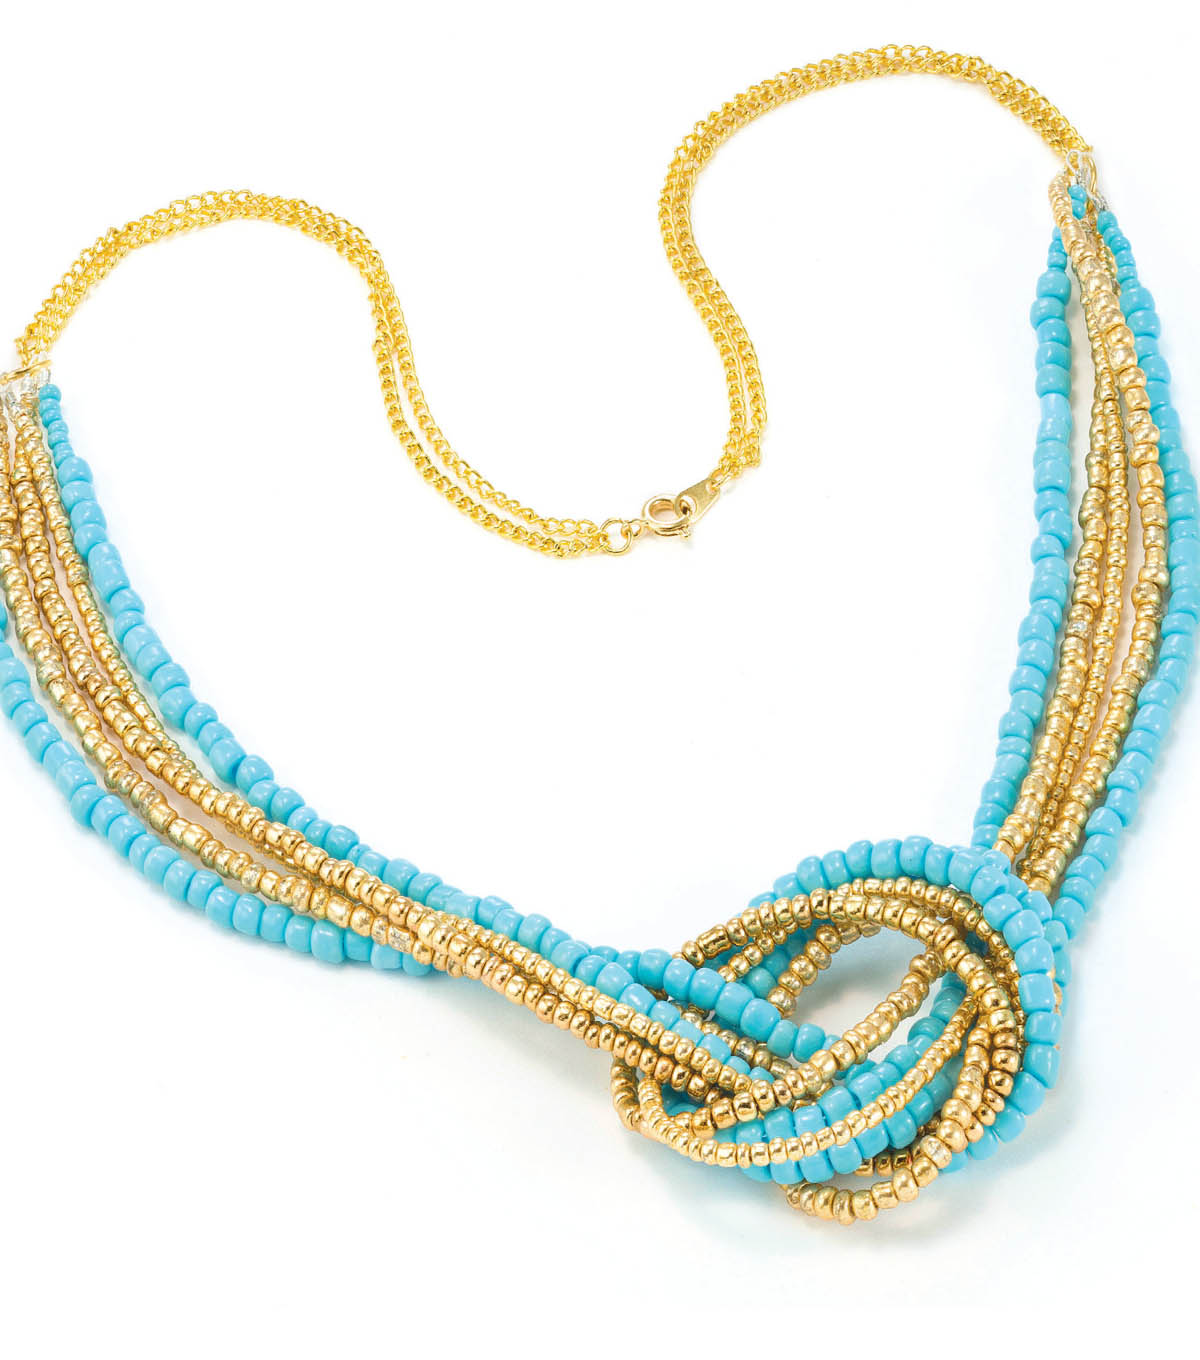 Seed Bead Love Knot Necklace